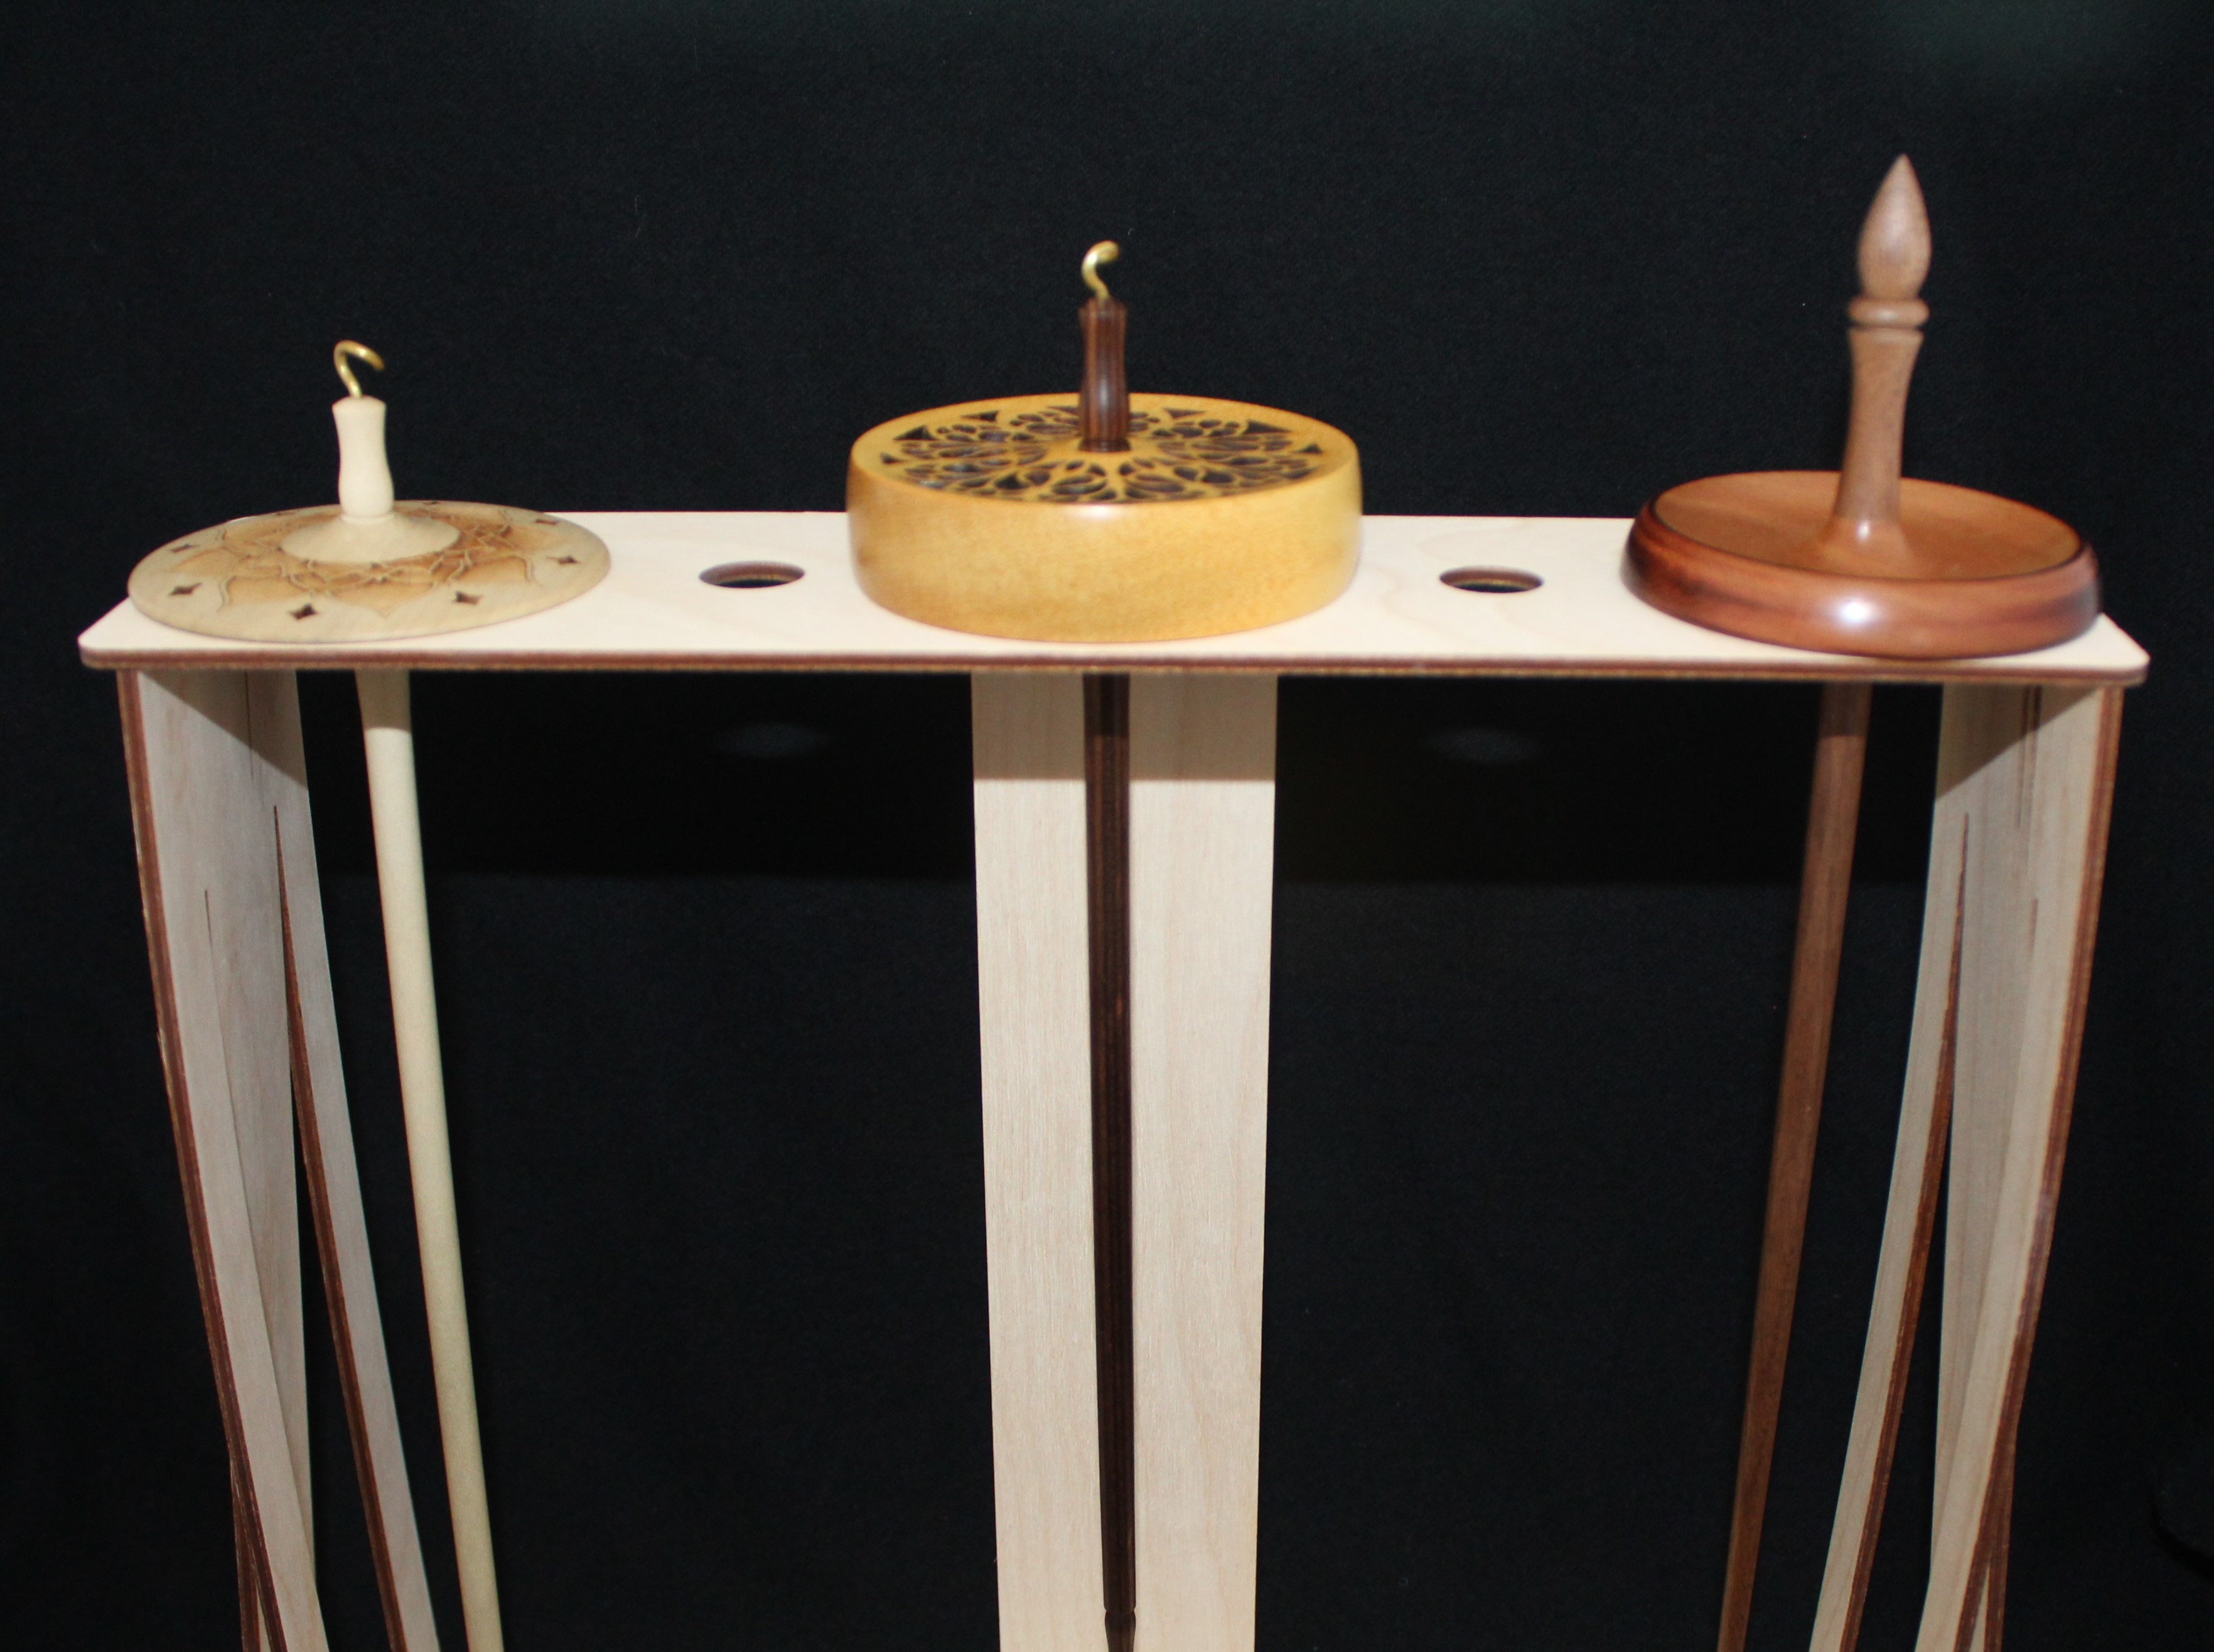 A Spanish Peacock Spindle Storage Stand can hold up to three spindles with wider whorls